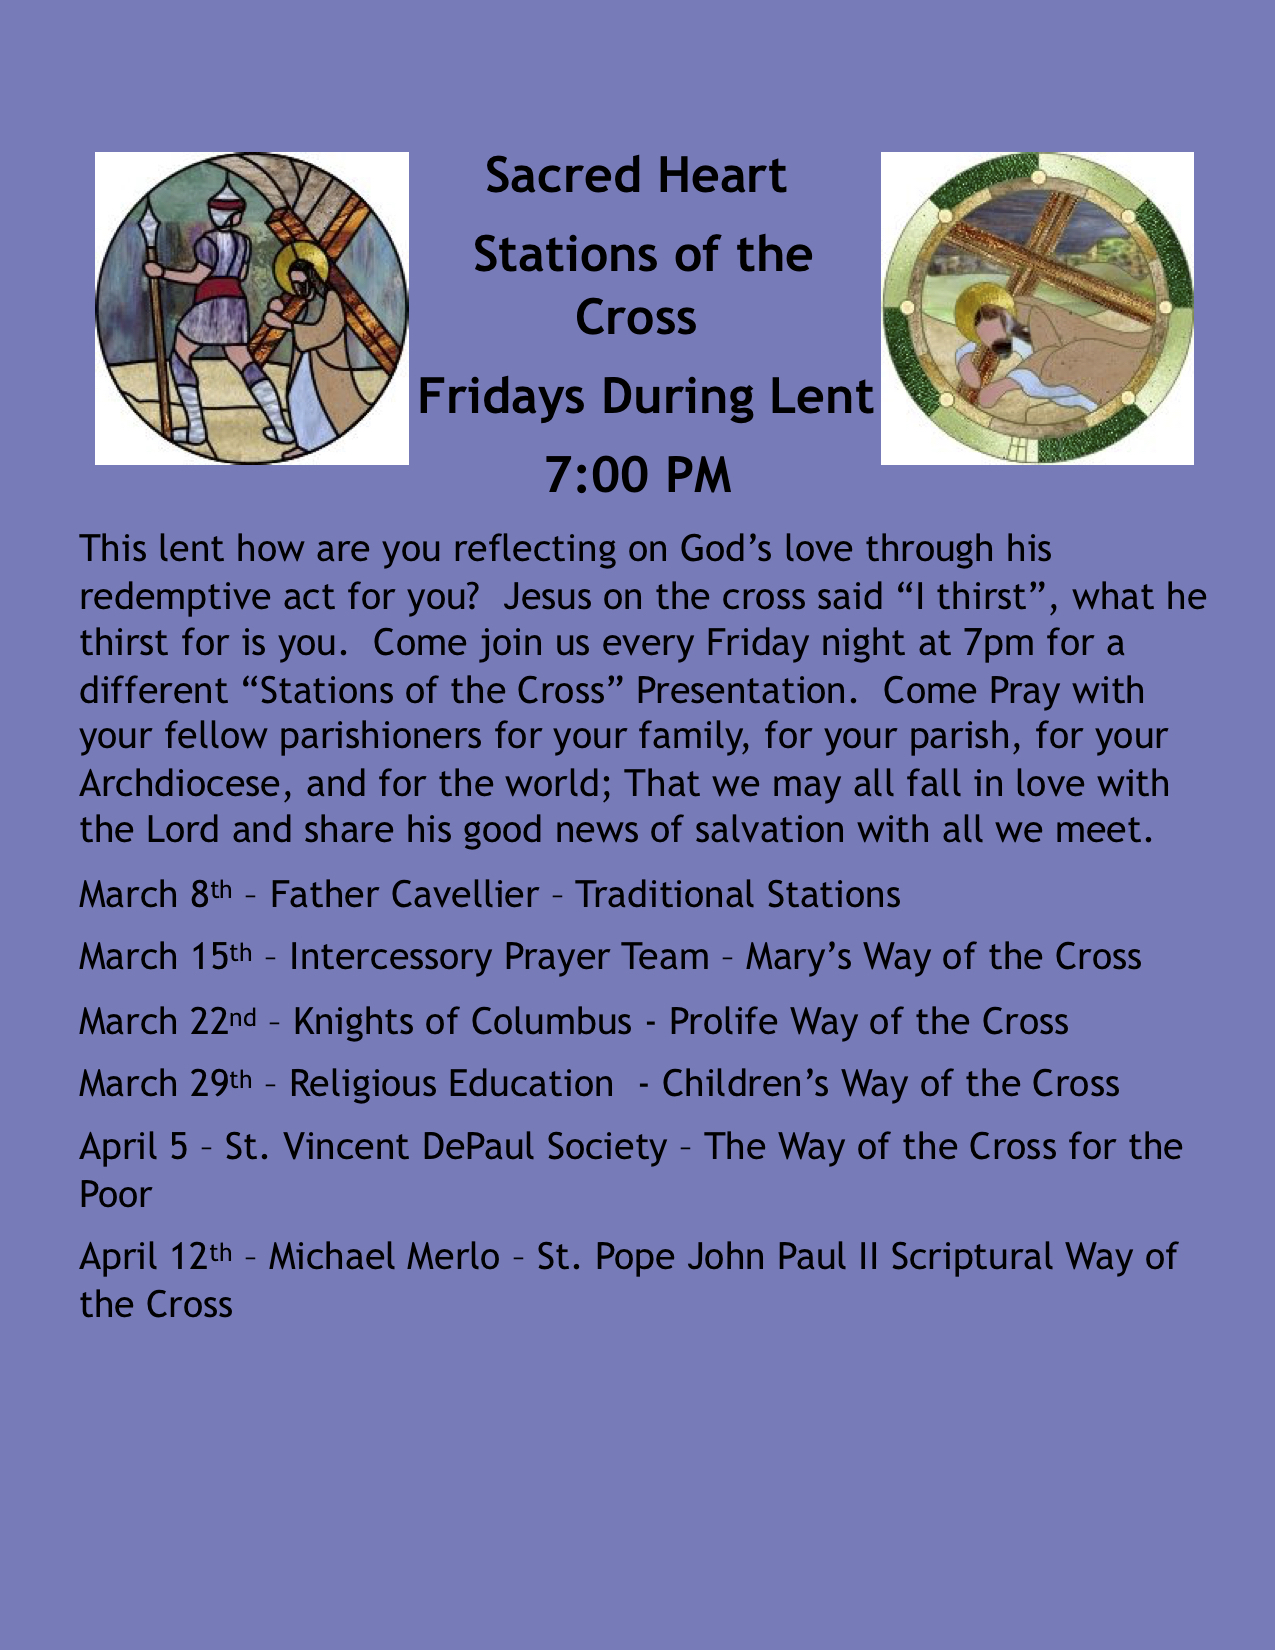 Sacred Heart - Stations of the Cross